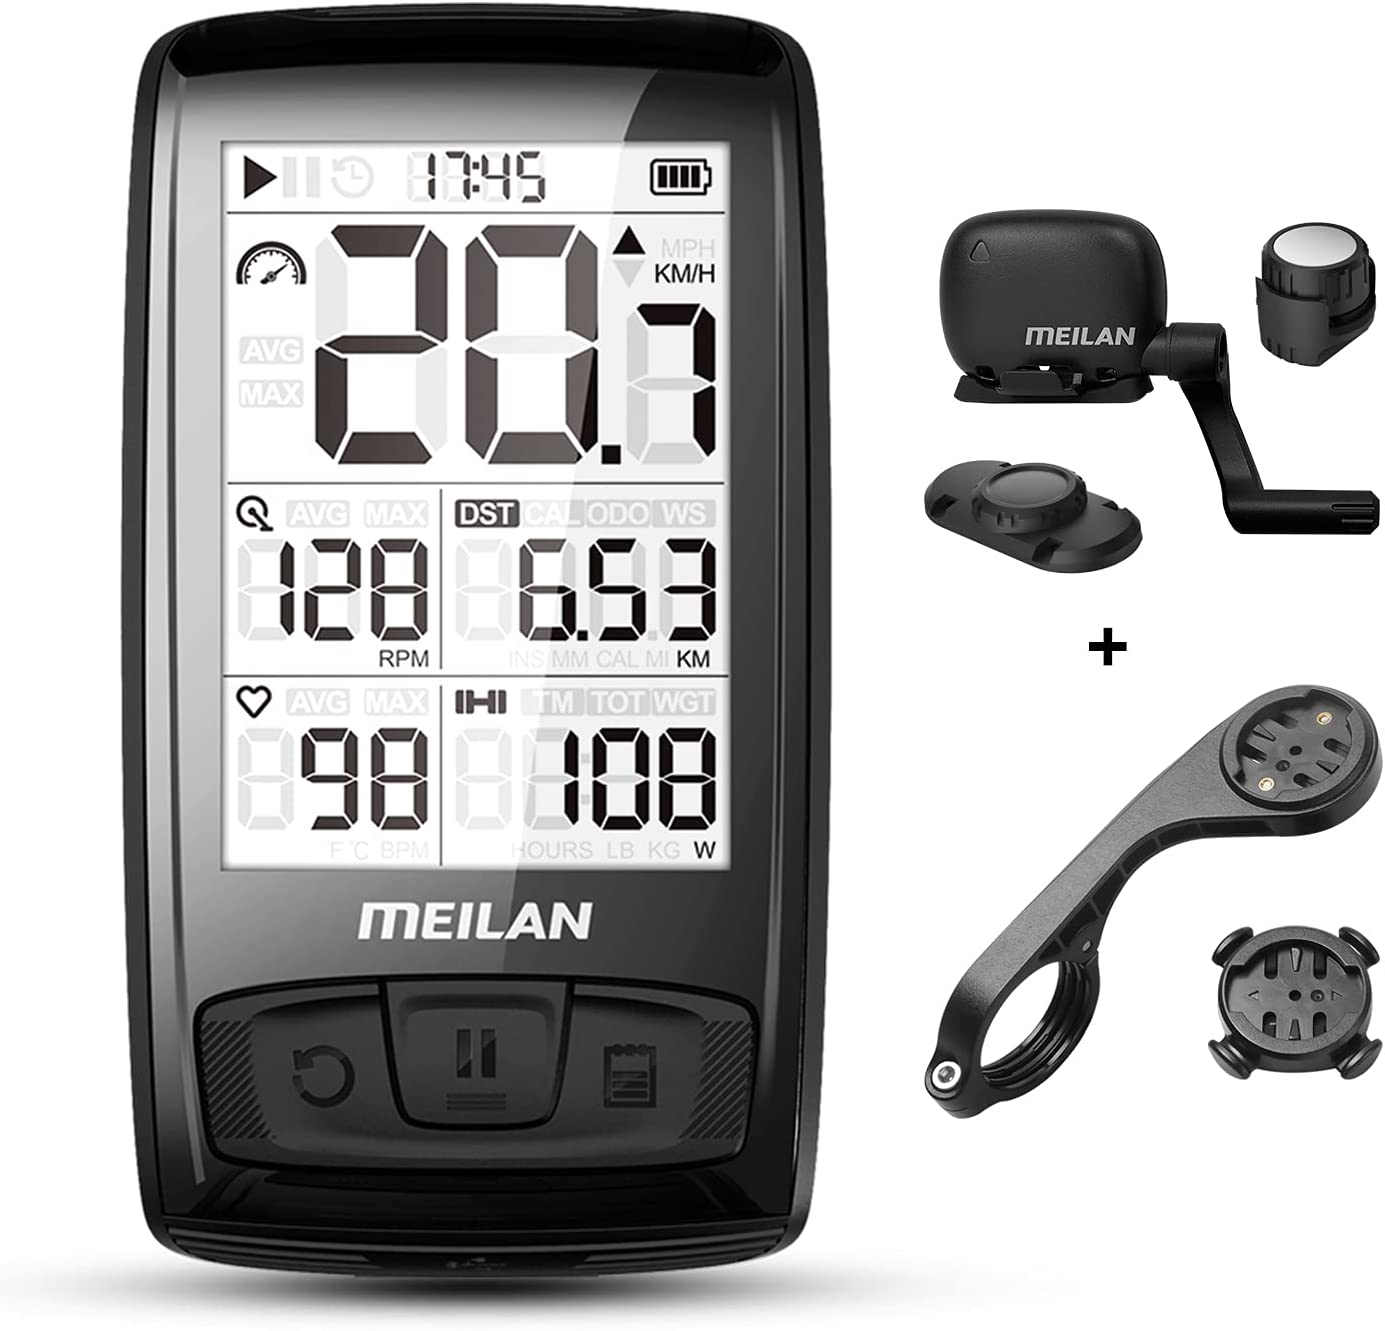 MEILAN Blade Wireless Bike Cycling 4 Max 51% OFF years warranty Backli with Computer